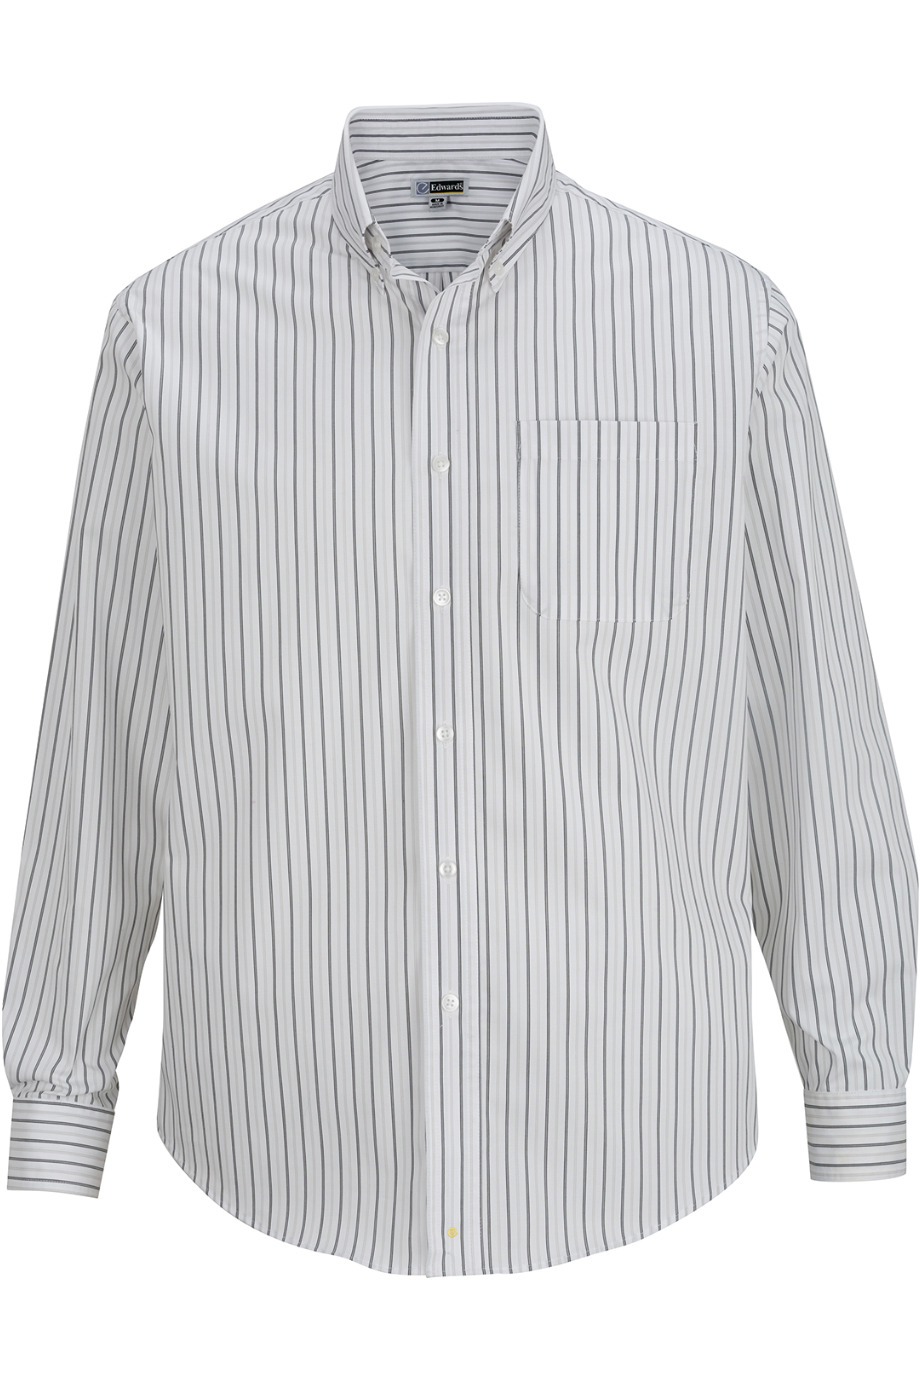 Edwards Garment 1983 - Men's Double Stripe Poplin